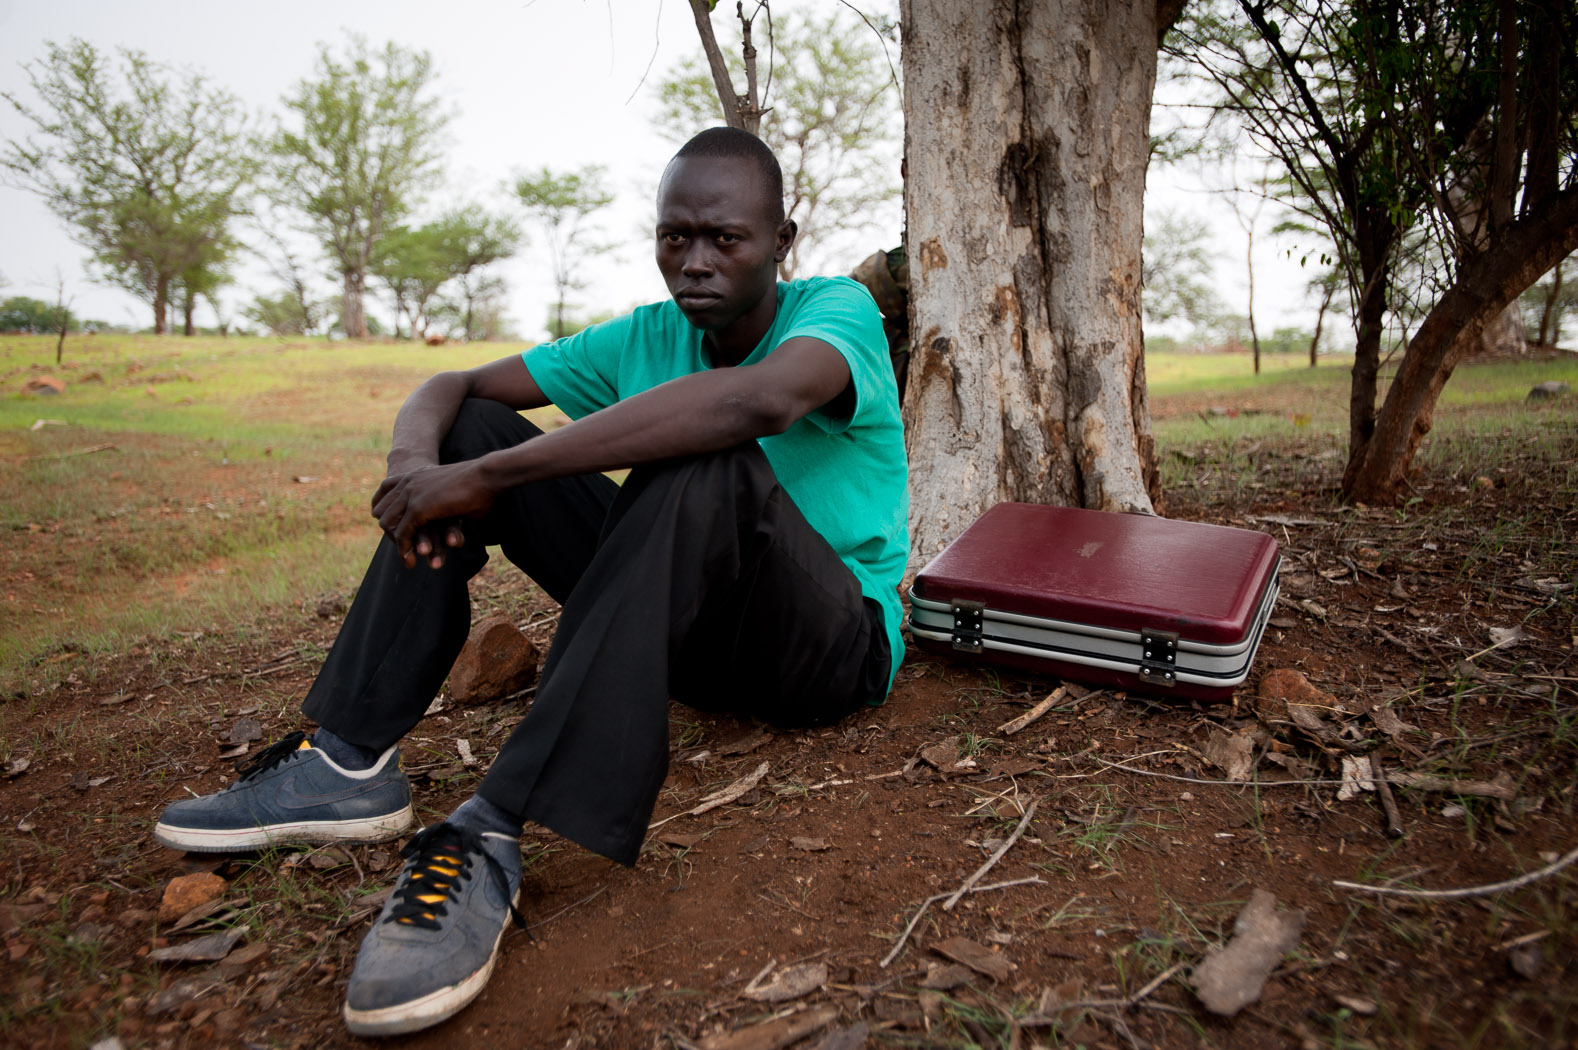 """For others, though, they just hope to leave. Joseph from Kauda says """"I hope to get to Kenya, to take refuge ... for the sake of security - I don't feel secure here"""".  Joseph left Kauda two days ago, and sitting with his only possessions is taking shelter, hiding under a tree as Anotonov bombers drone overhead."""